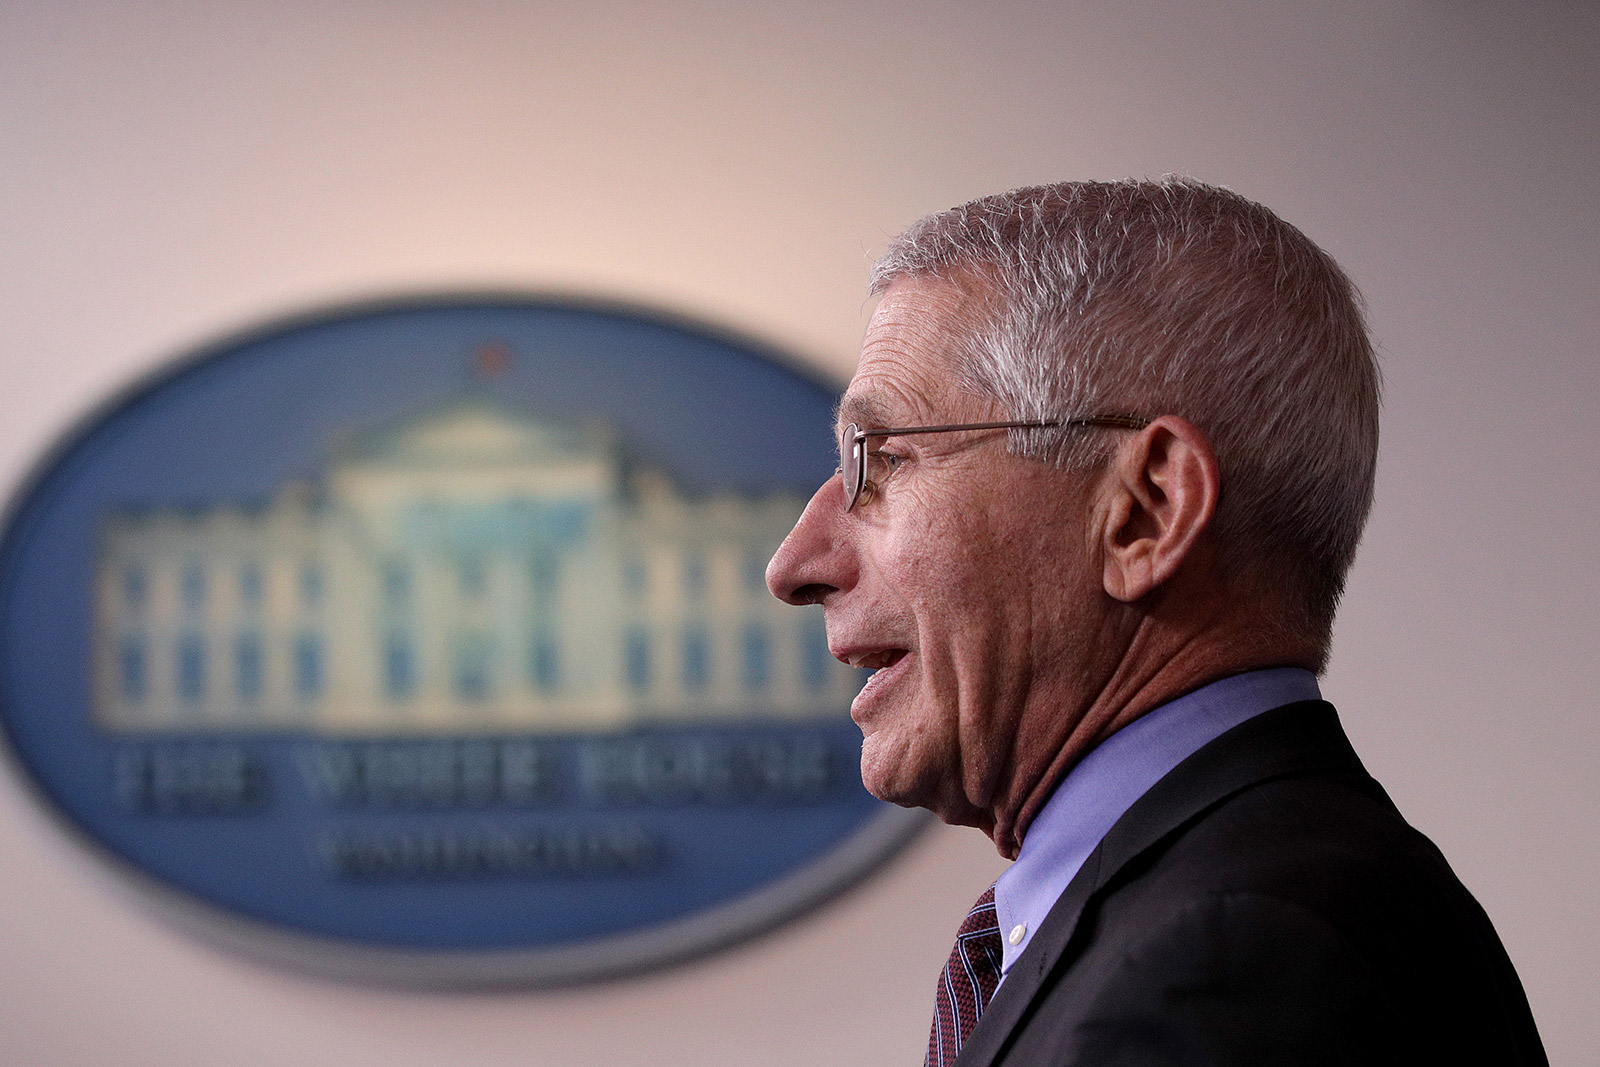 Dr. Anthony Fauci attends a coronavirus briefing at the White House in April.